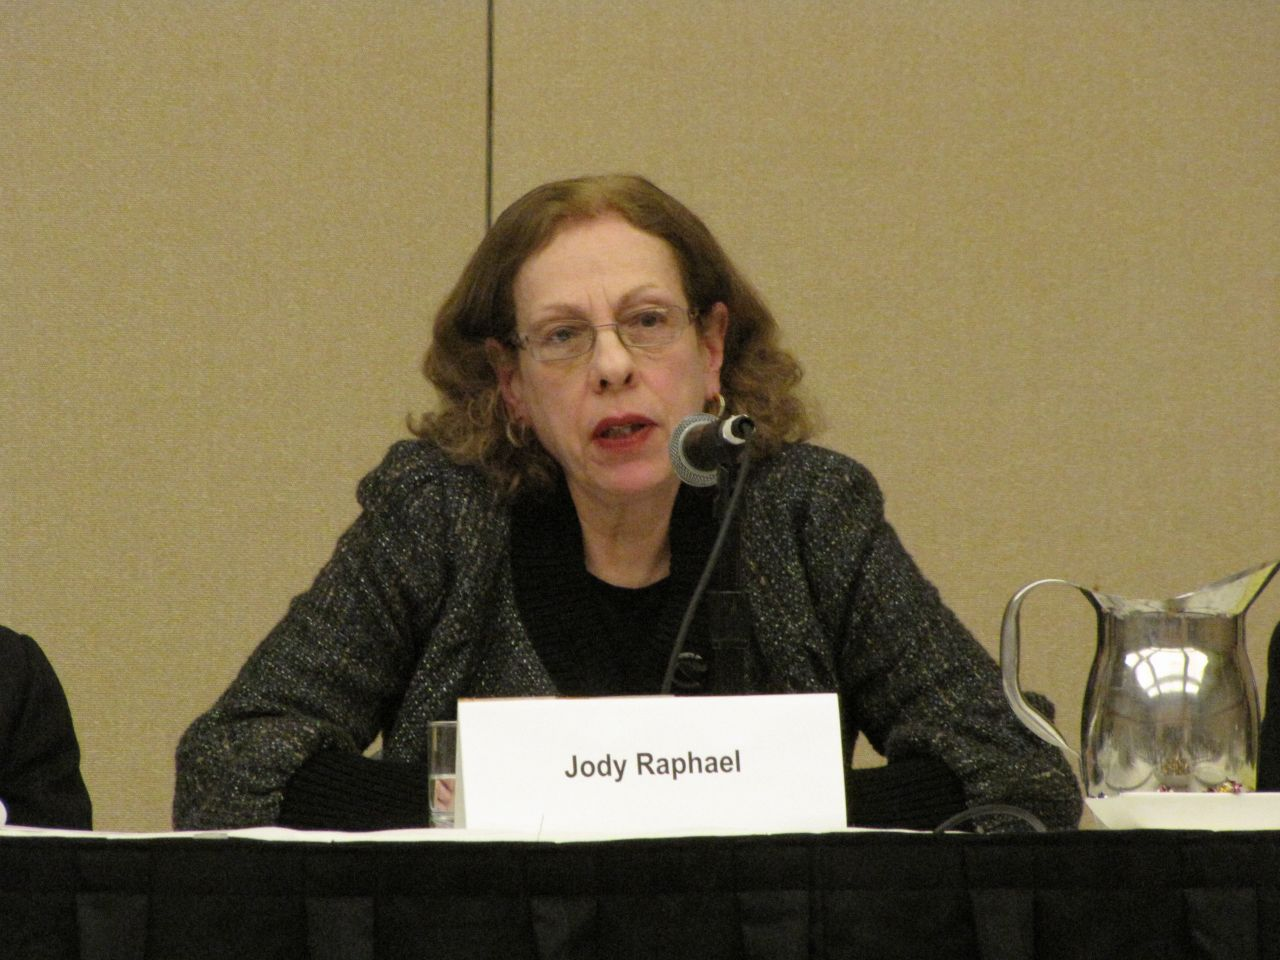 Panelist Judy Raphael, an advocate for victims of sex trafficking